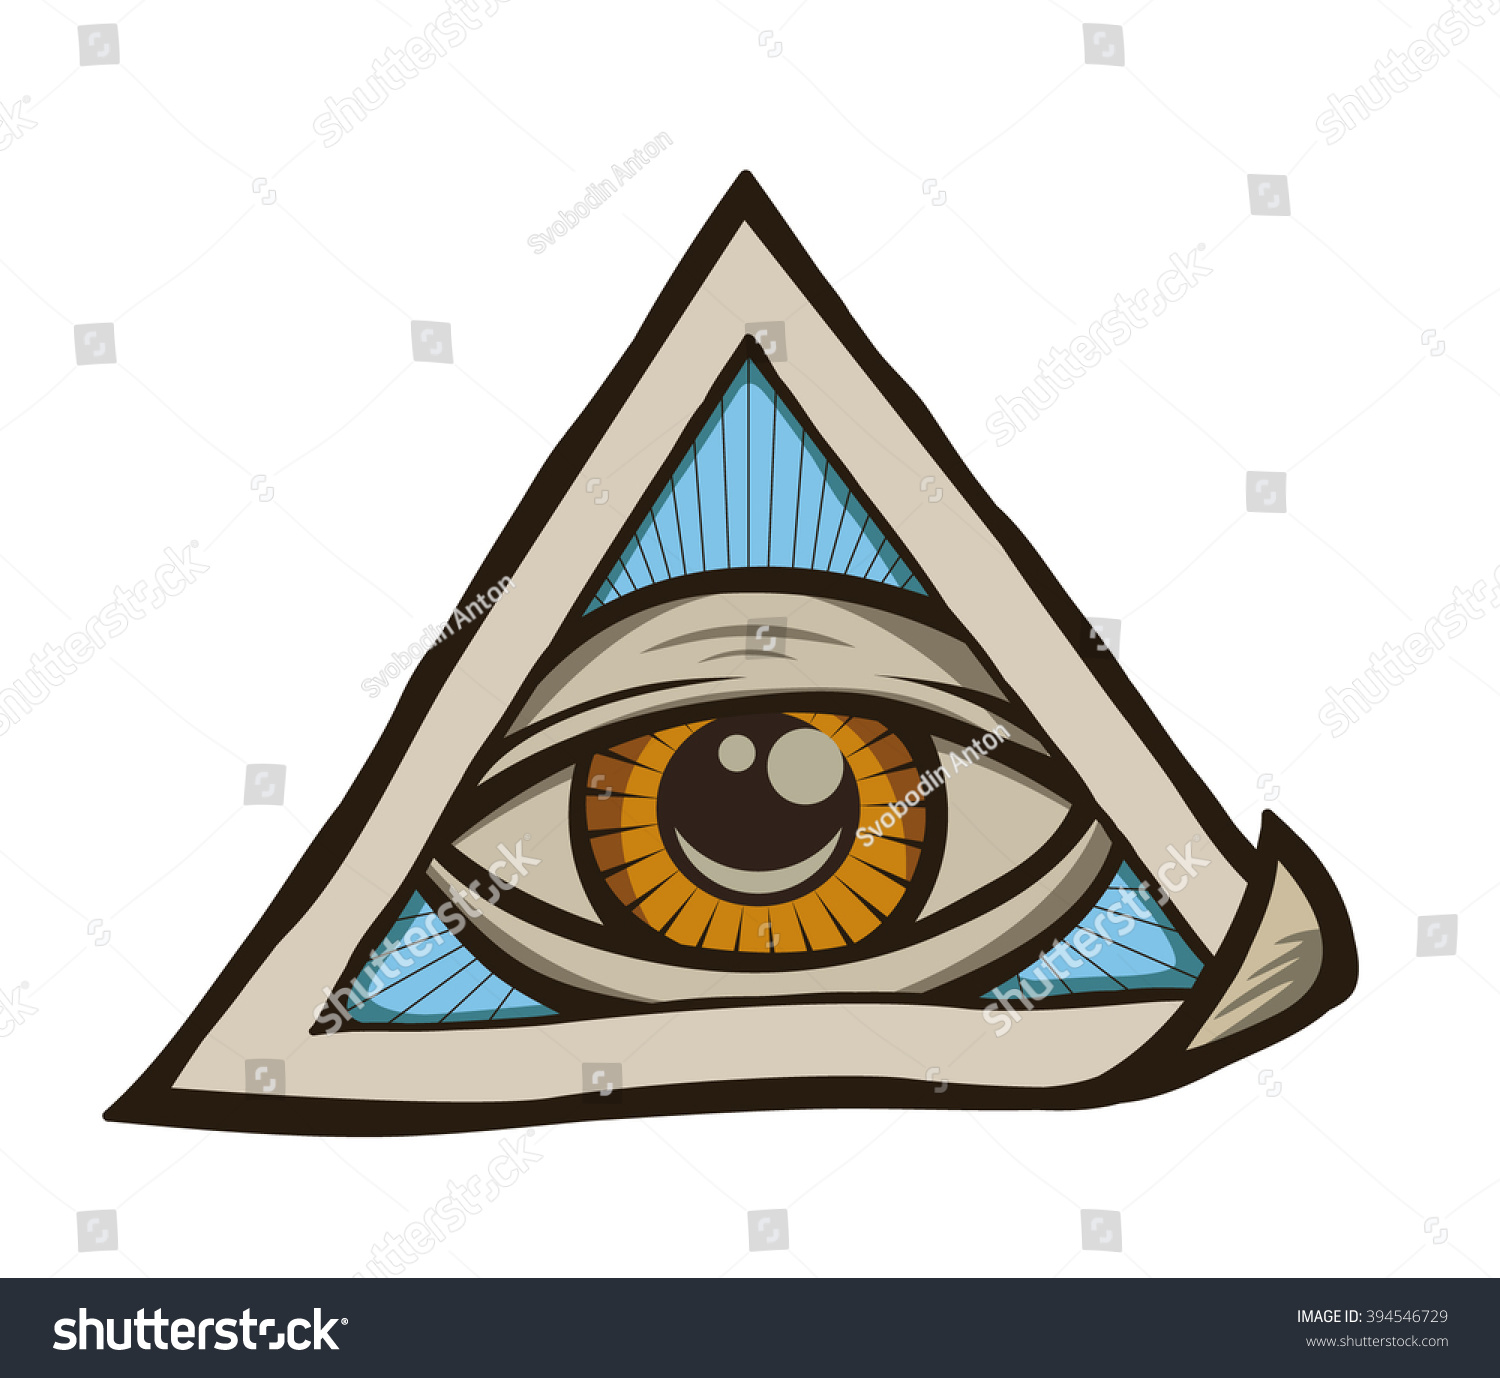 Illuminati dating site